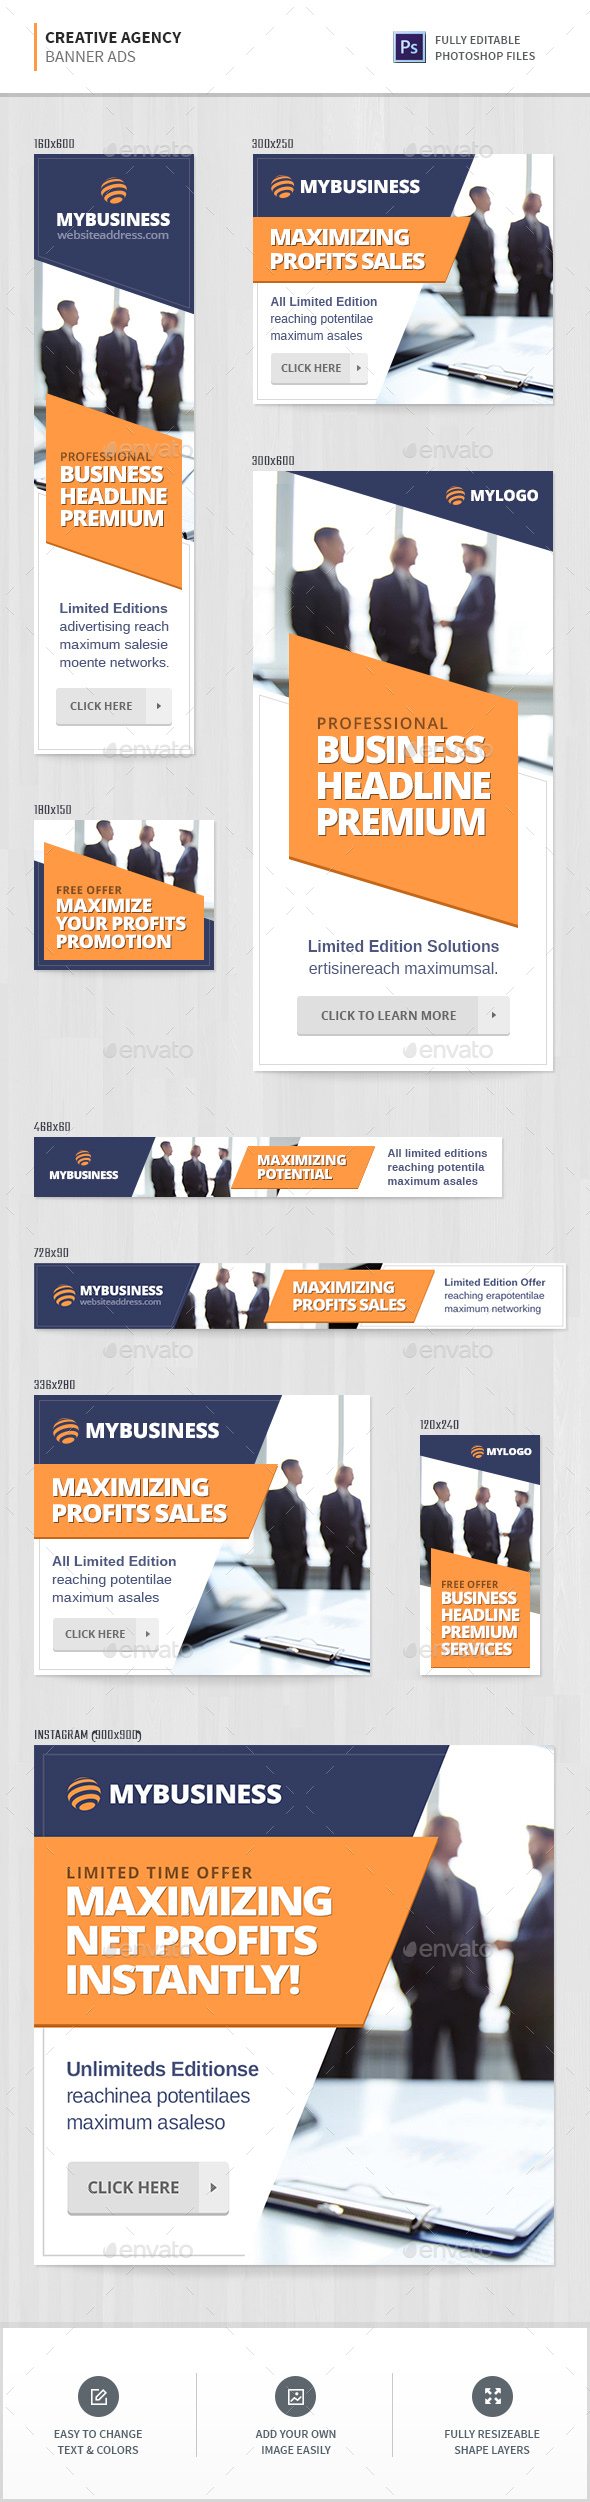 Creative Agency Banners - Banners & Ads Web Elements